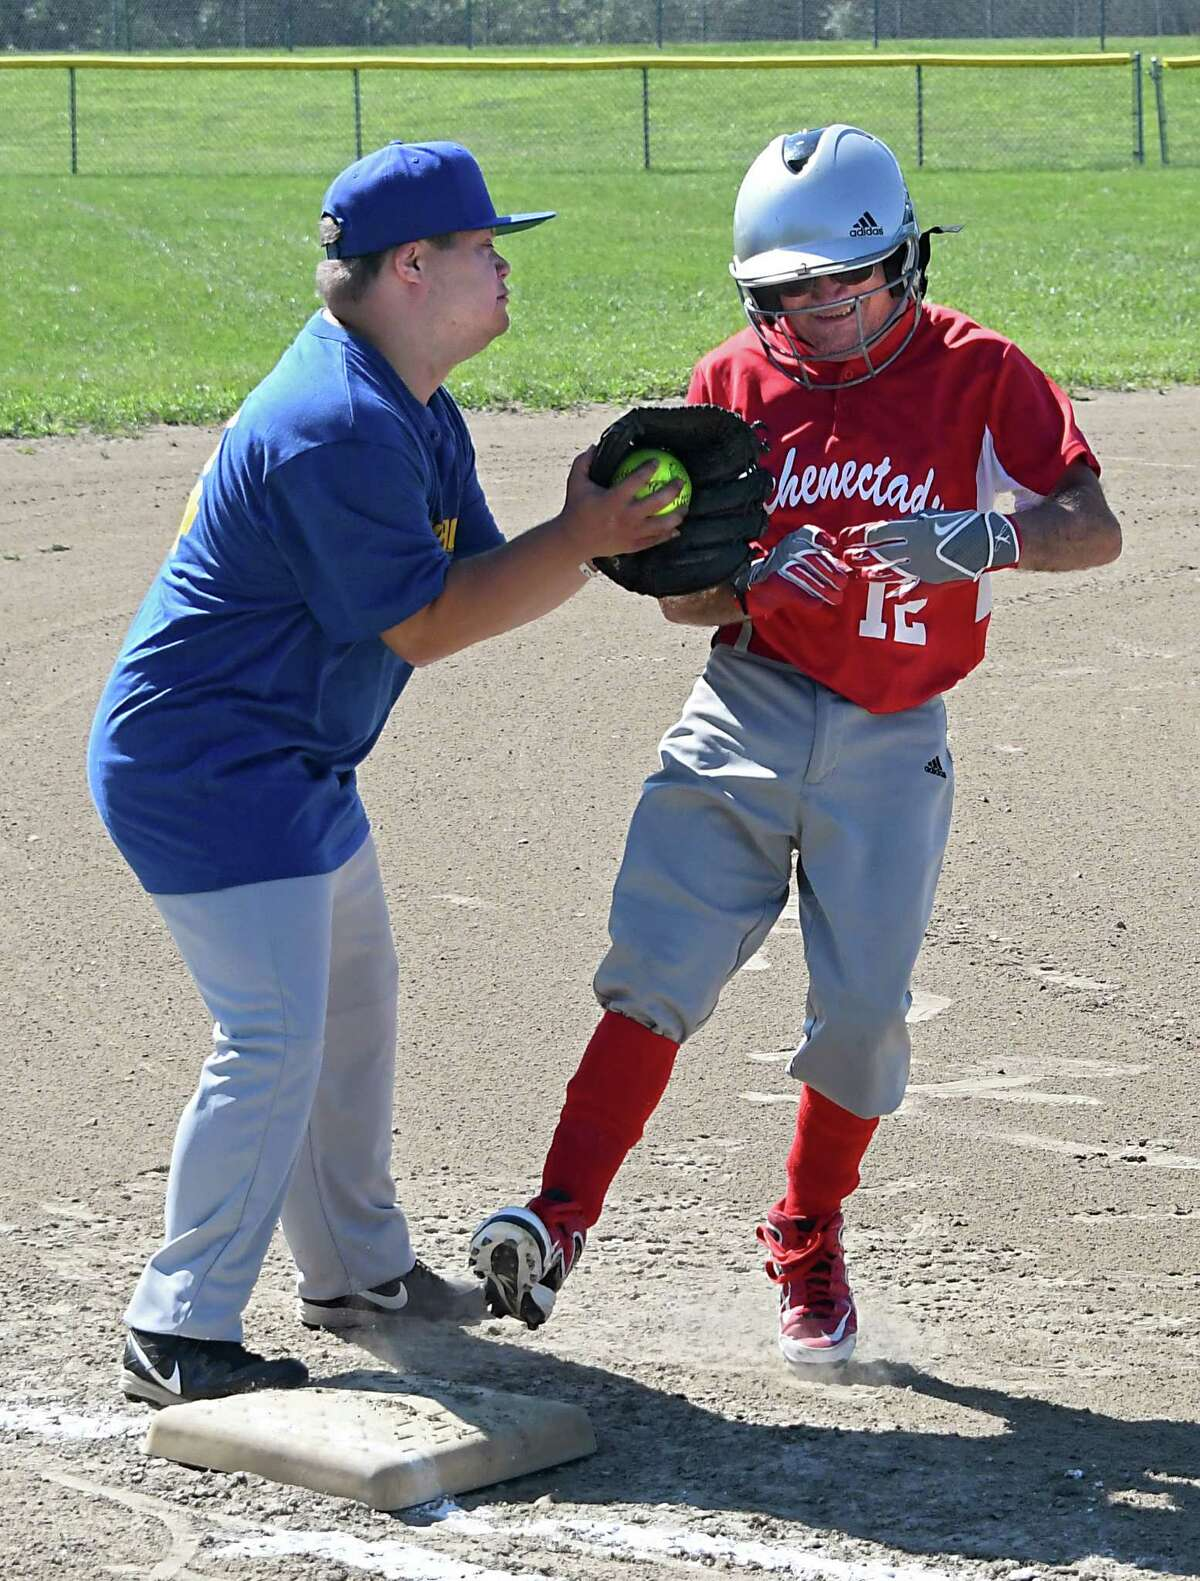 Third baseman Phil Isaacson of the Thunderbolts tags out Roger Foster of the Schenectady South Paws during the Special Olympics New York's 2016 Capital District Local Softball Tournament held at Veterans Memorial Park at Elks Trail on Sunday, Aug. 7, 2016 in Clifton Park, N.Y. (Lori Van Buren / Times Union)